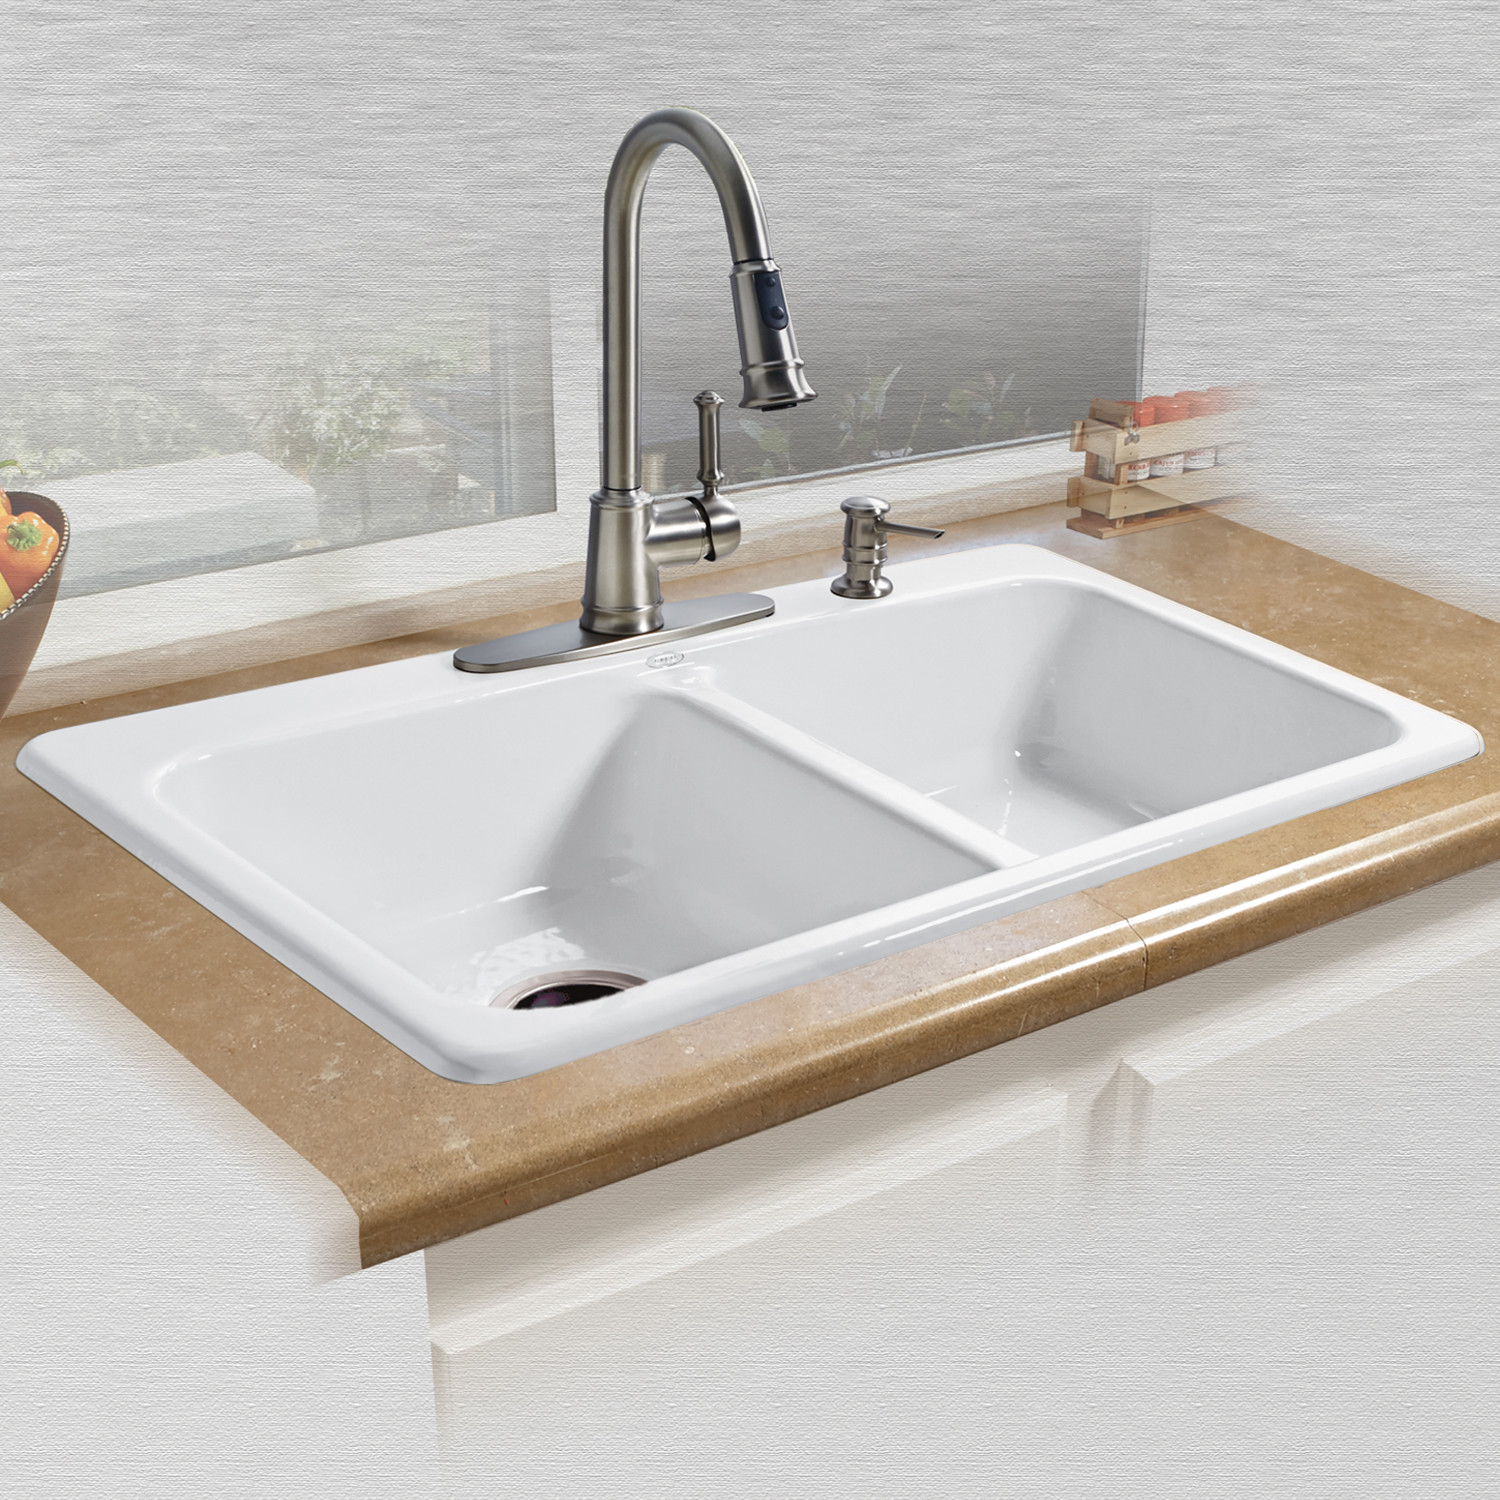 Miseno Mci25 4tm 33 Double Basin Drop In Cast Iron Kitchen Sink